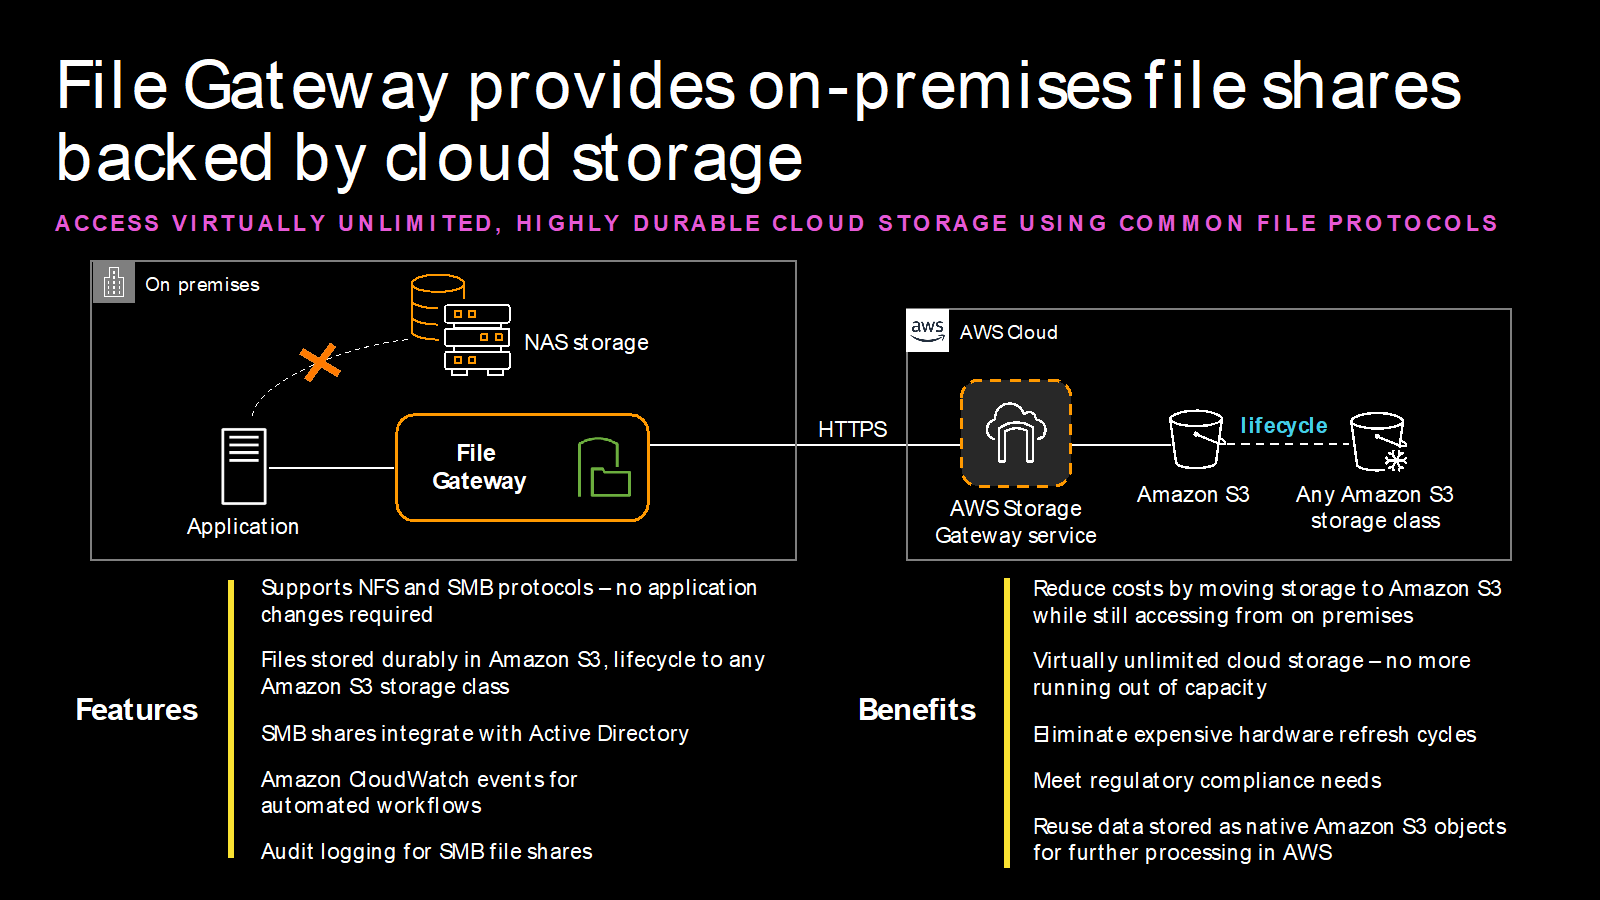 File Gateway provides on-premises file shares backed by cloud storage.